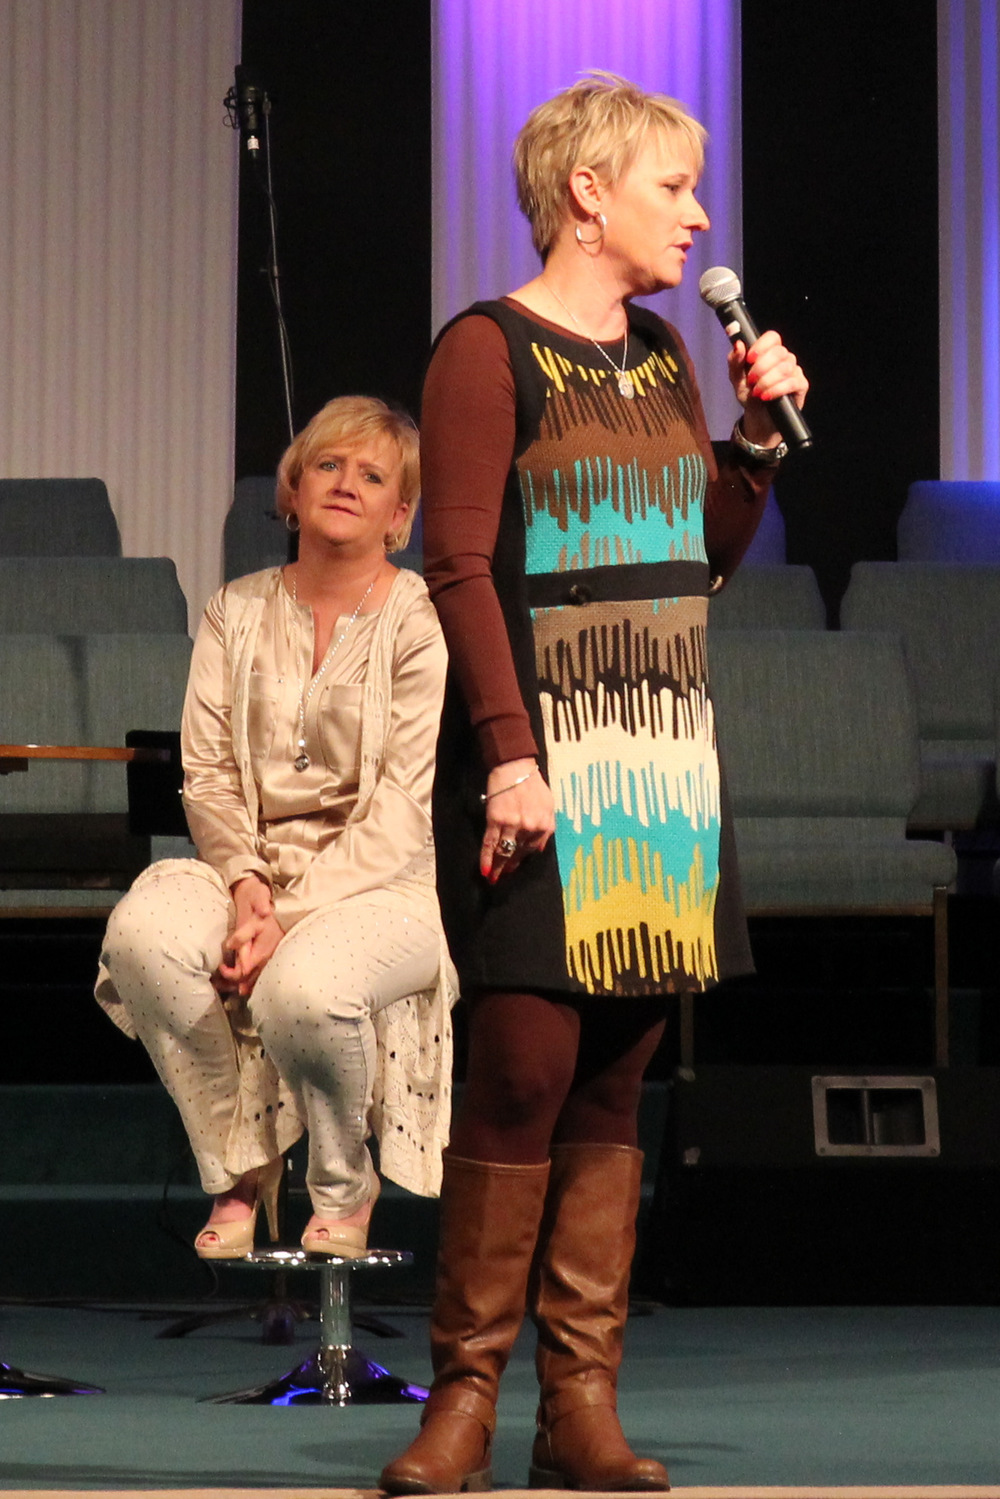 Honored to perform with veteran comedian Chonda Pierce.